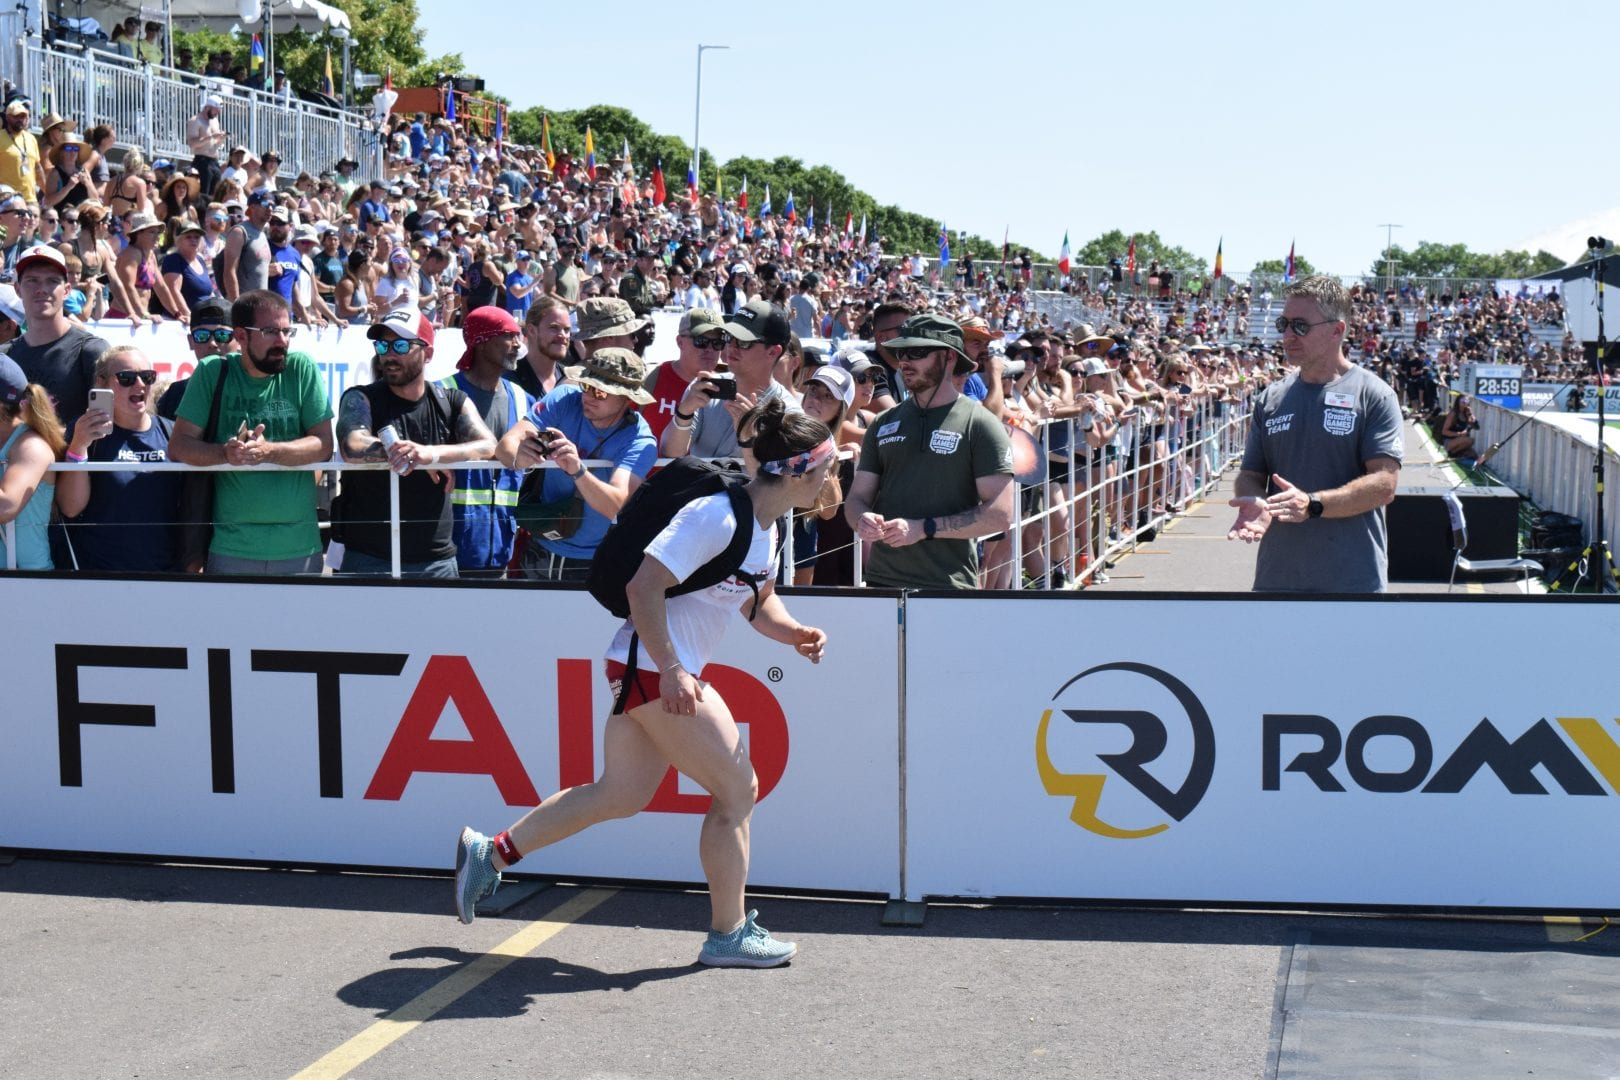 Kari Pearce completes the Ruck Run event at the 2019 CrossFit Games